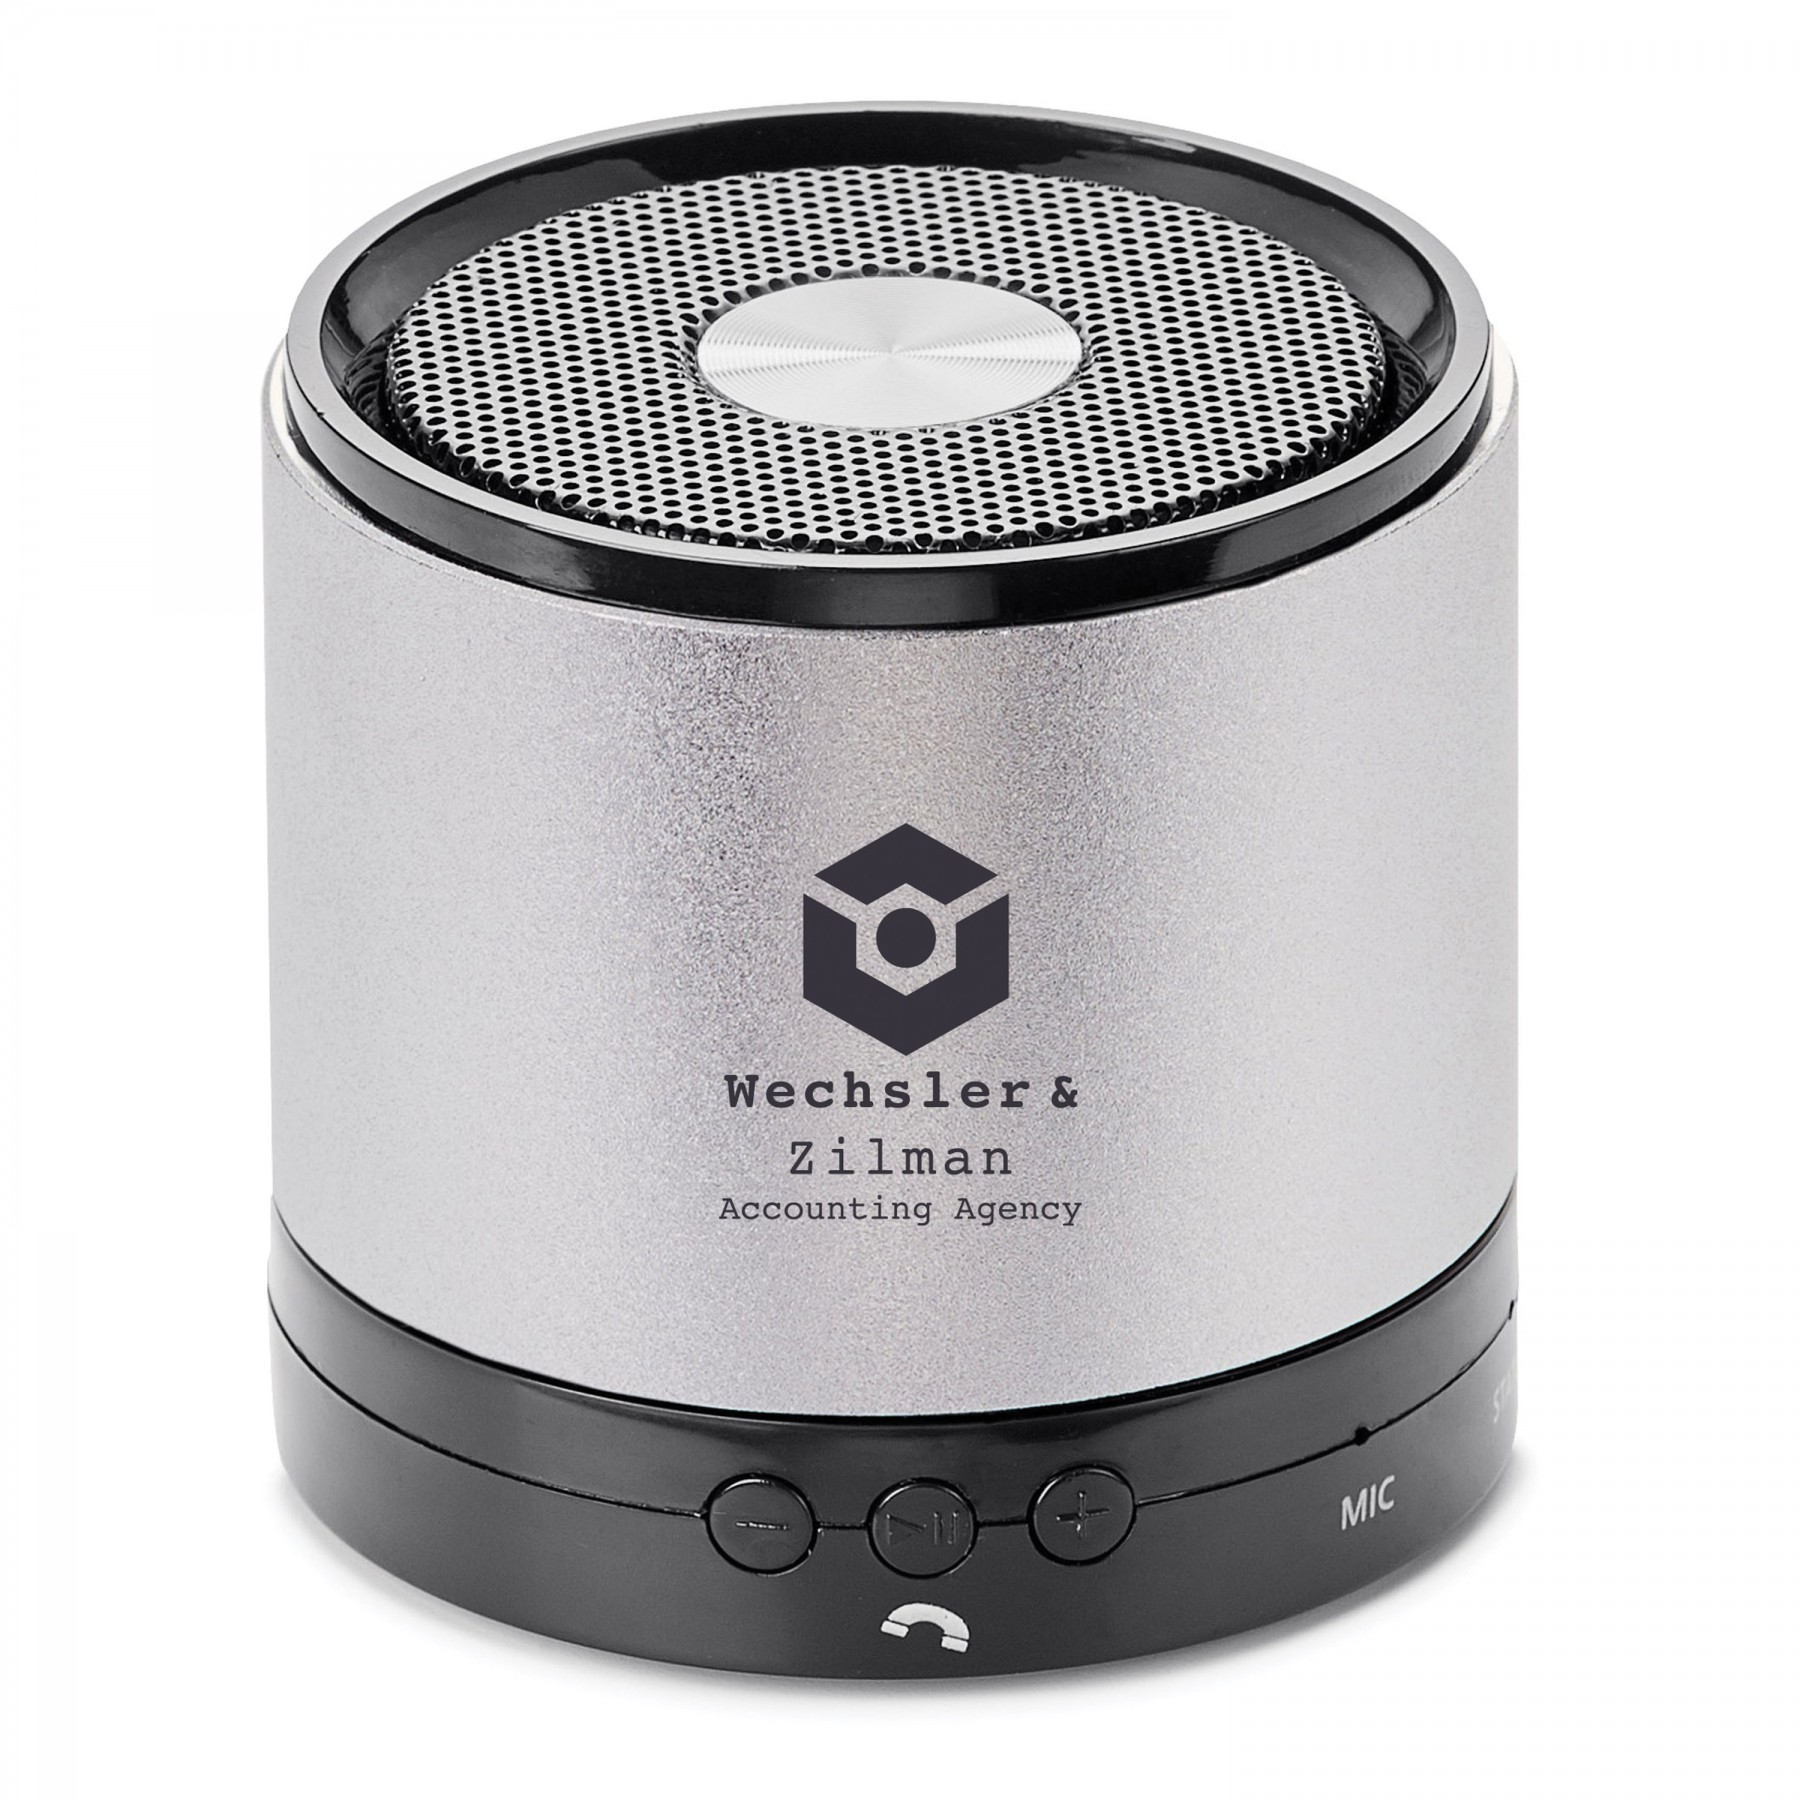 Addi Junior Wireless Speaker, T270, Laser Engraved